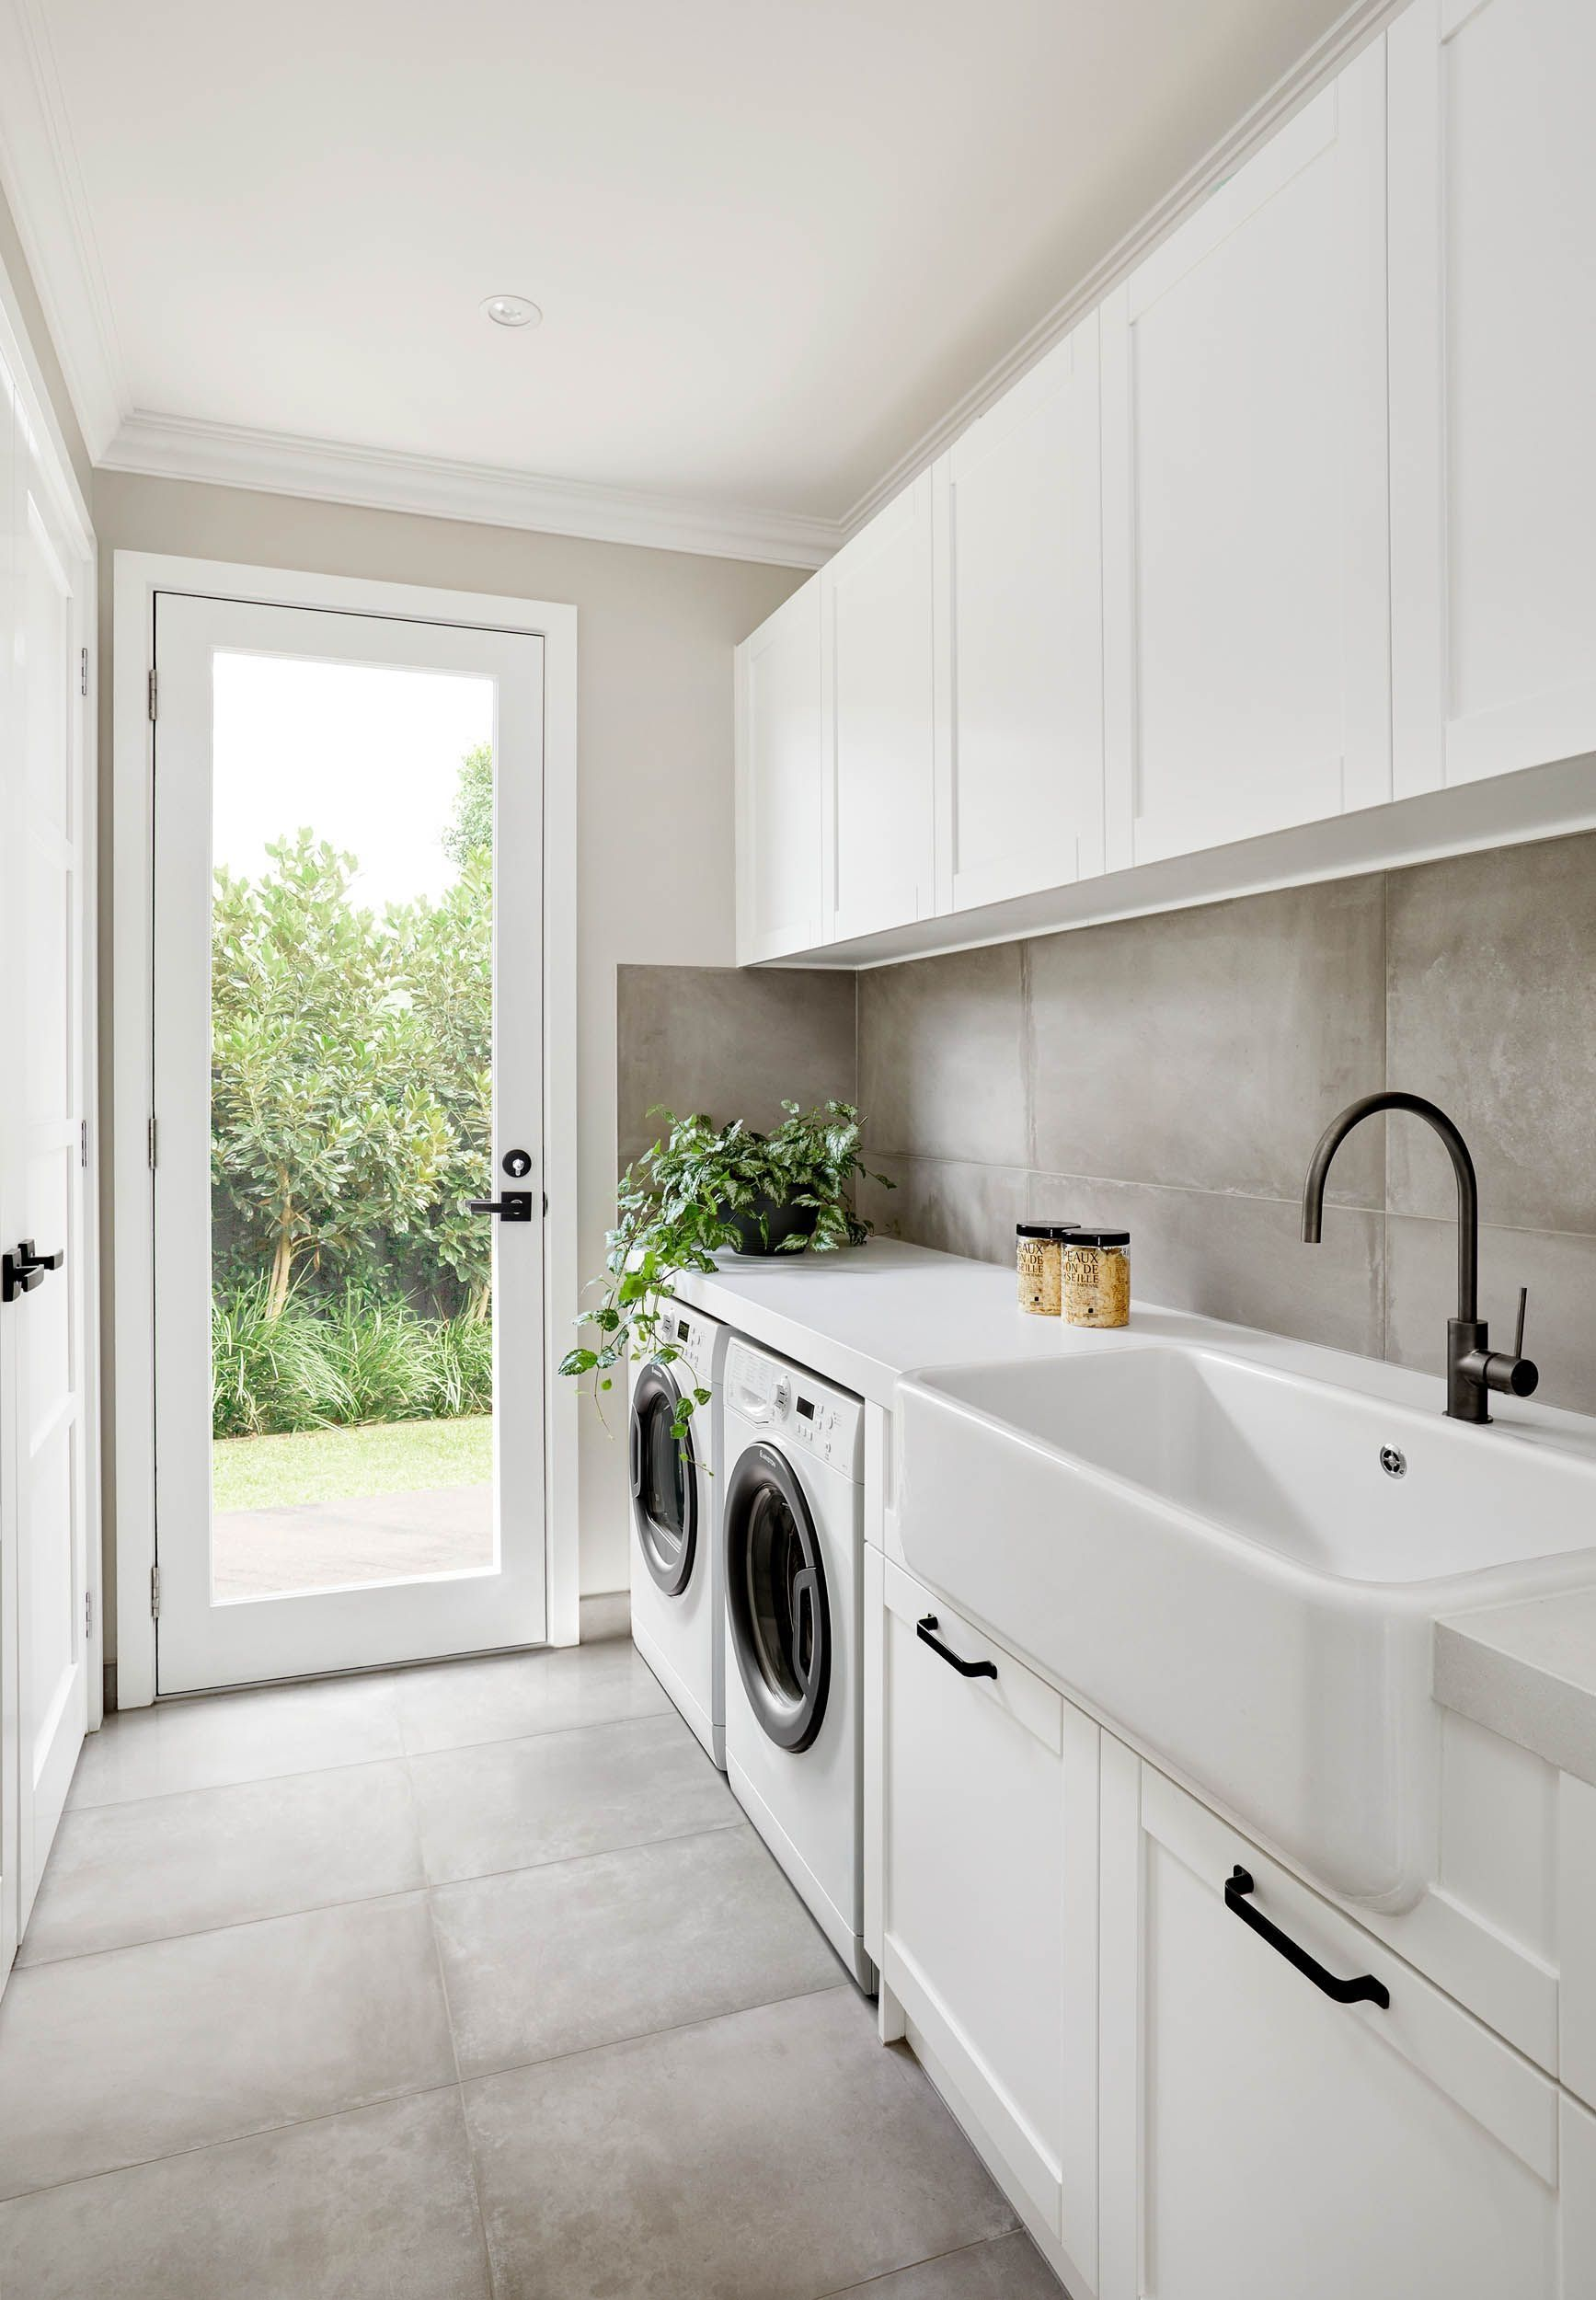 39 minimalist decorating for laundry room mudroom on effectively laundry room decoration ideas easy ideas to inspire you id=98537